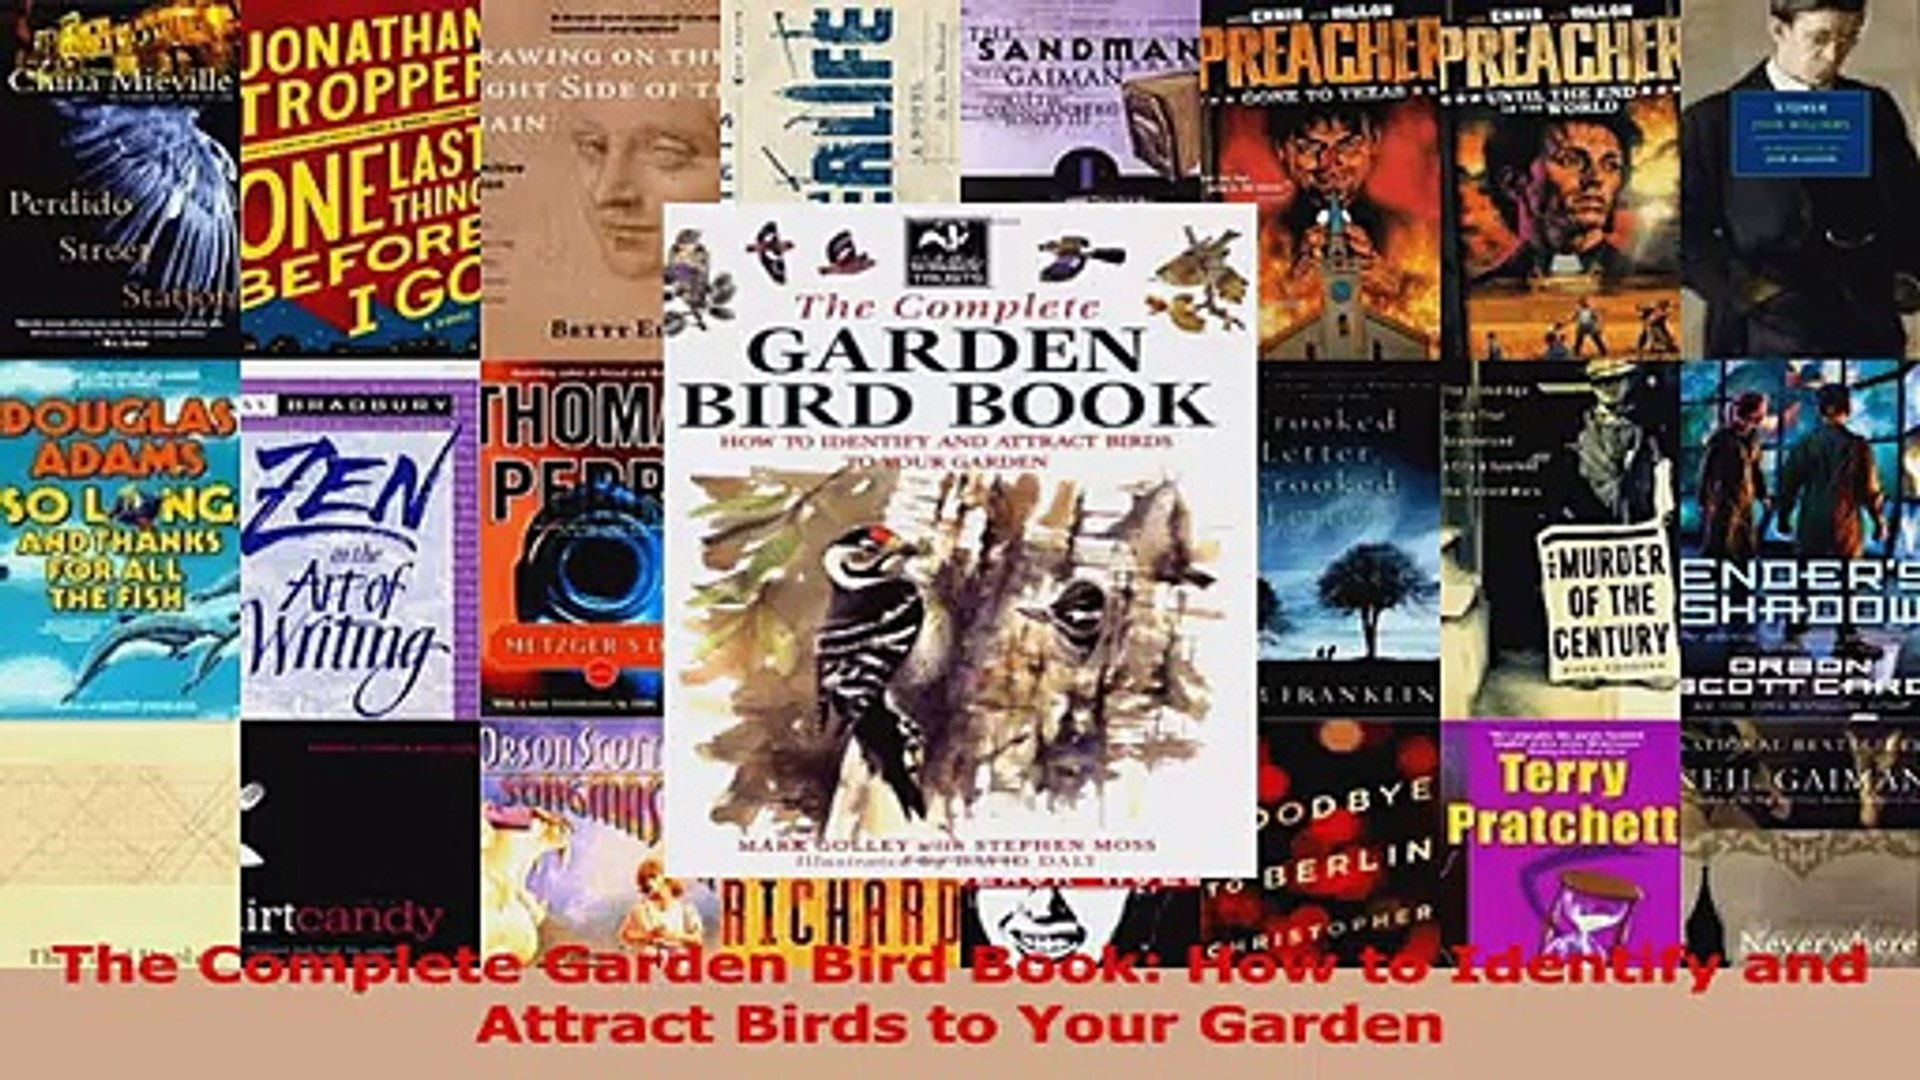 Read  The Complete Garden Bird Book How to Identify and Attract Birds to Your Garden Ebook Free